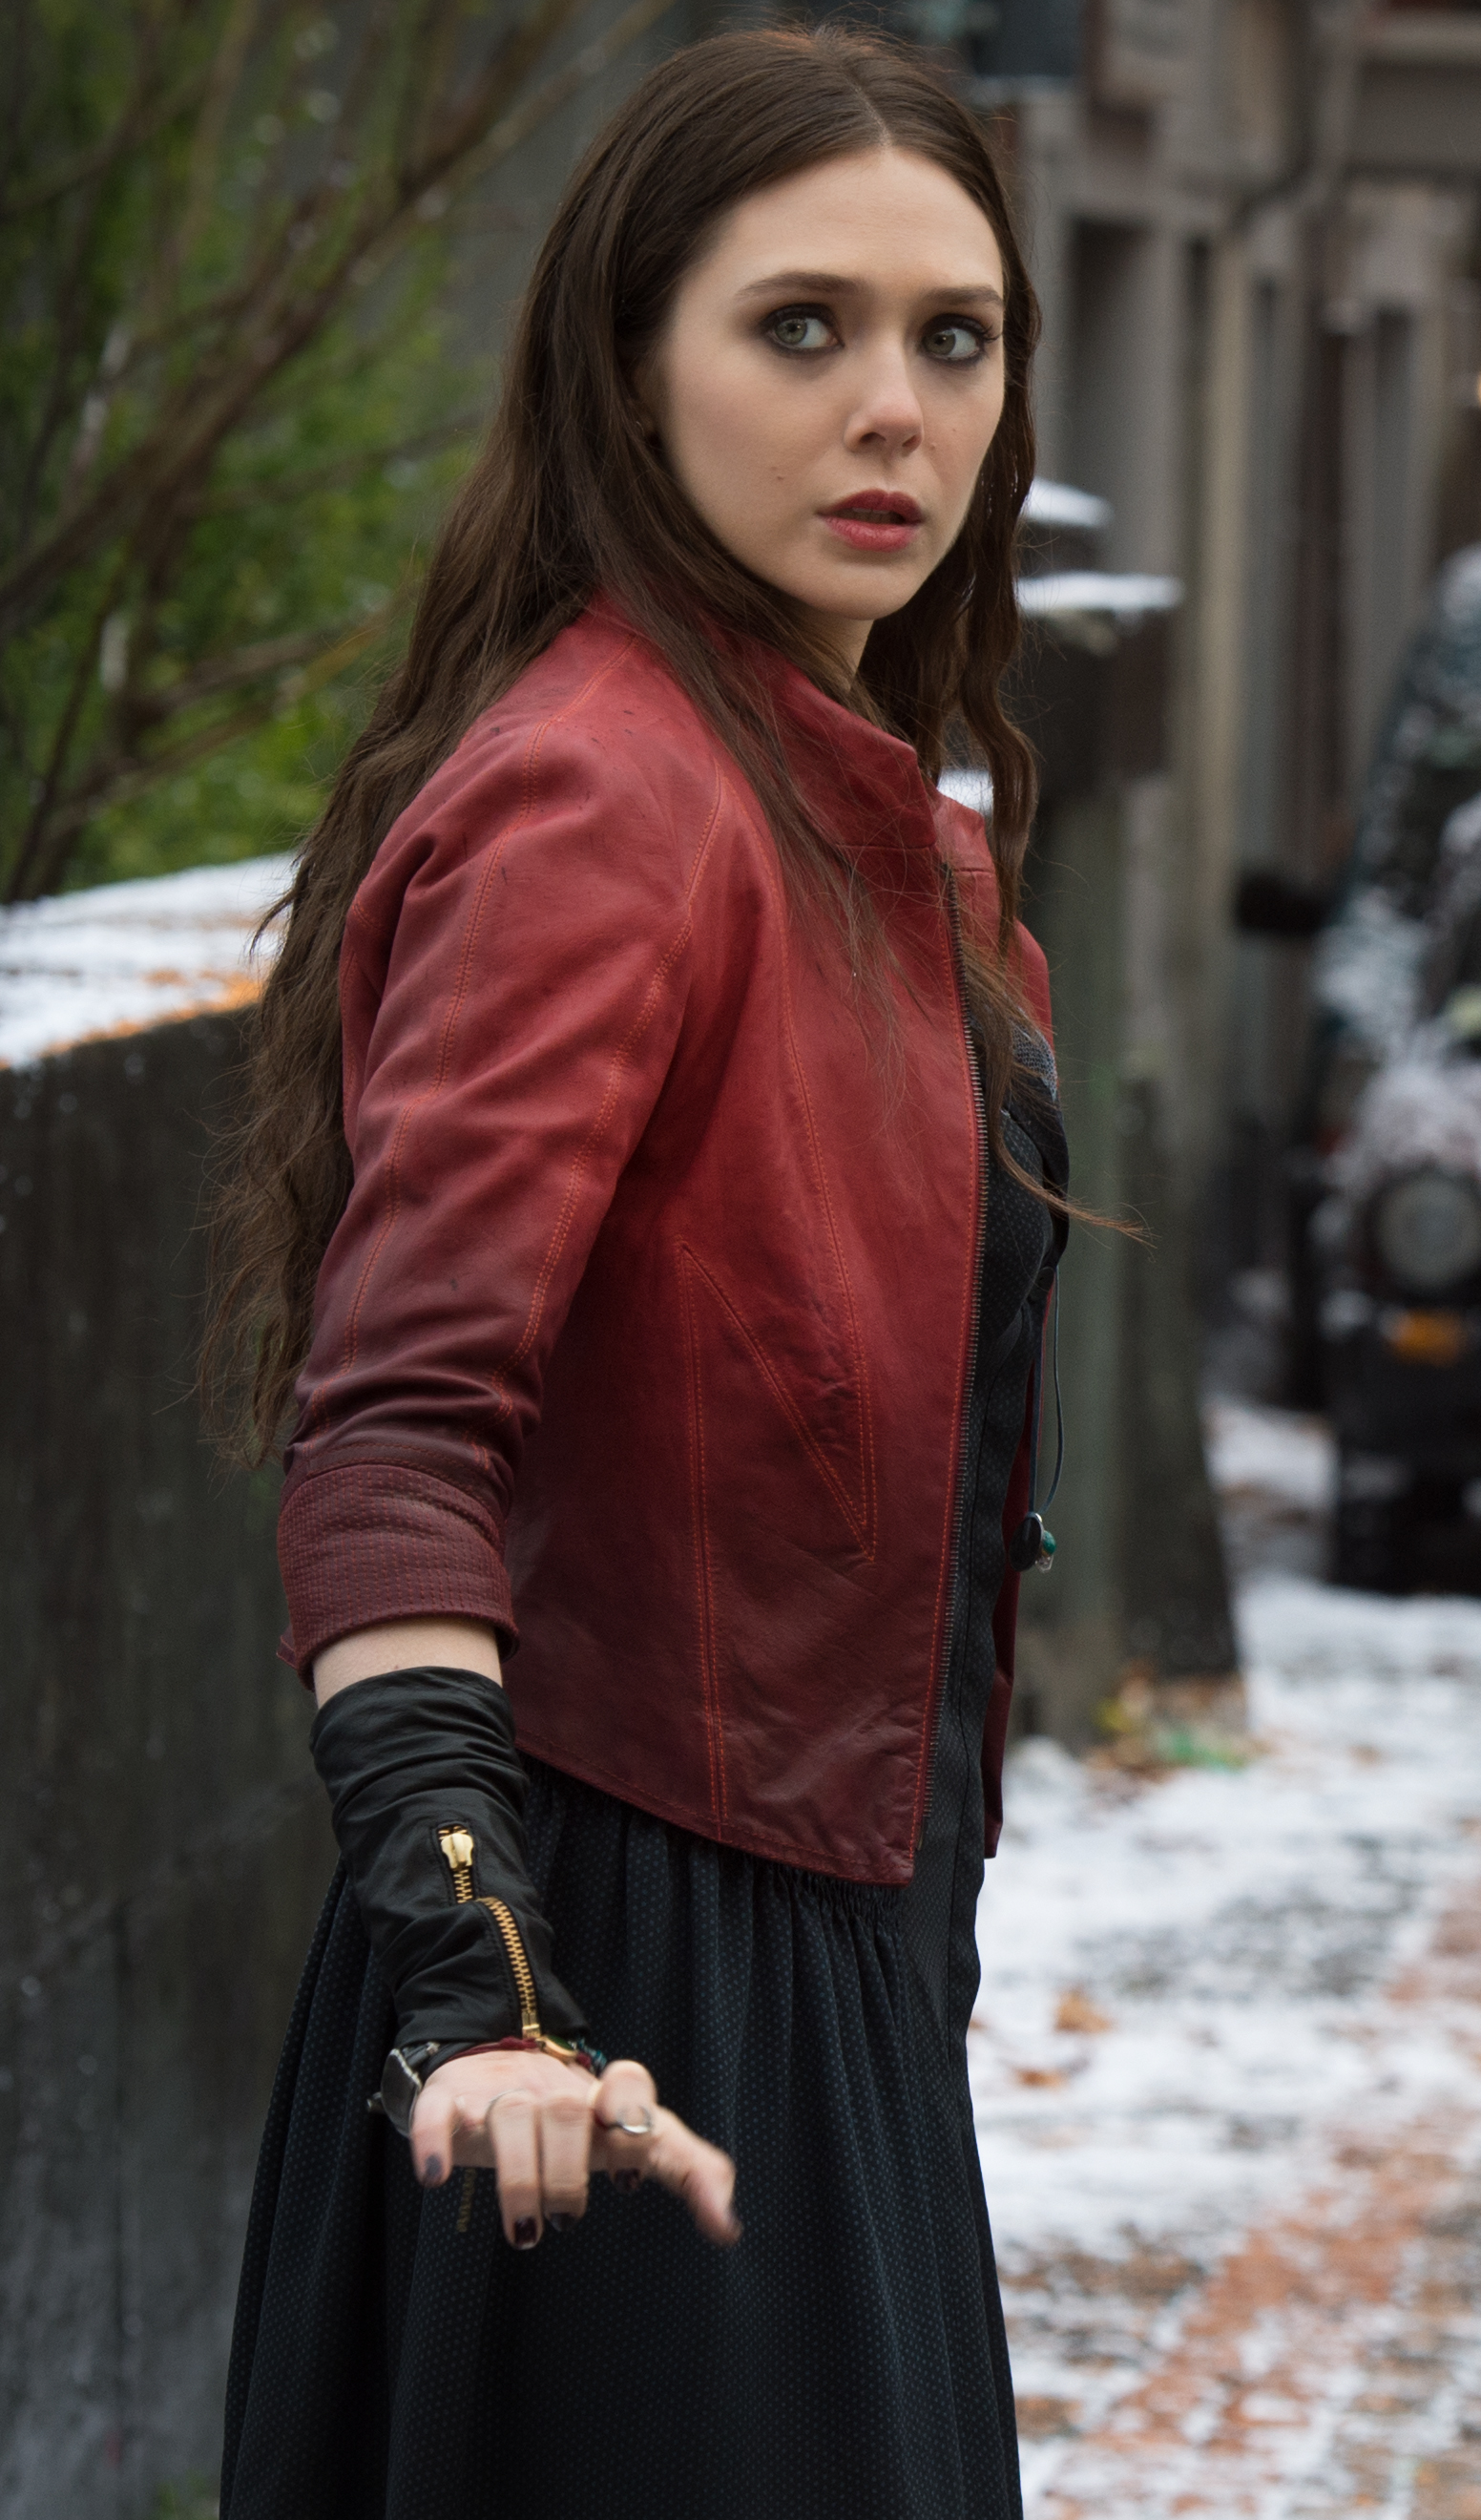 Wanda Maximoff The Scarlet Witch Marvel S Avengers Infp Elizabeth Olsen Scarlet Witch Scarlet Witch Costume Scarlet Witch